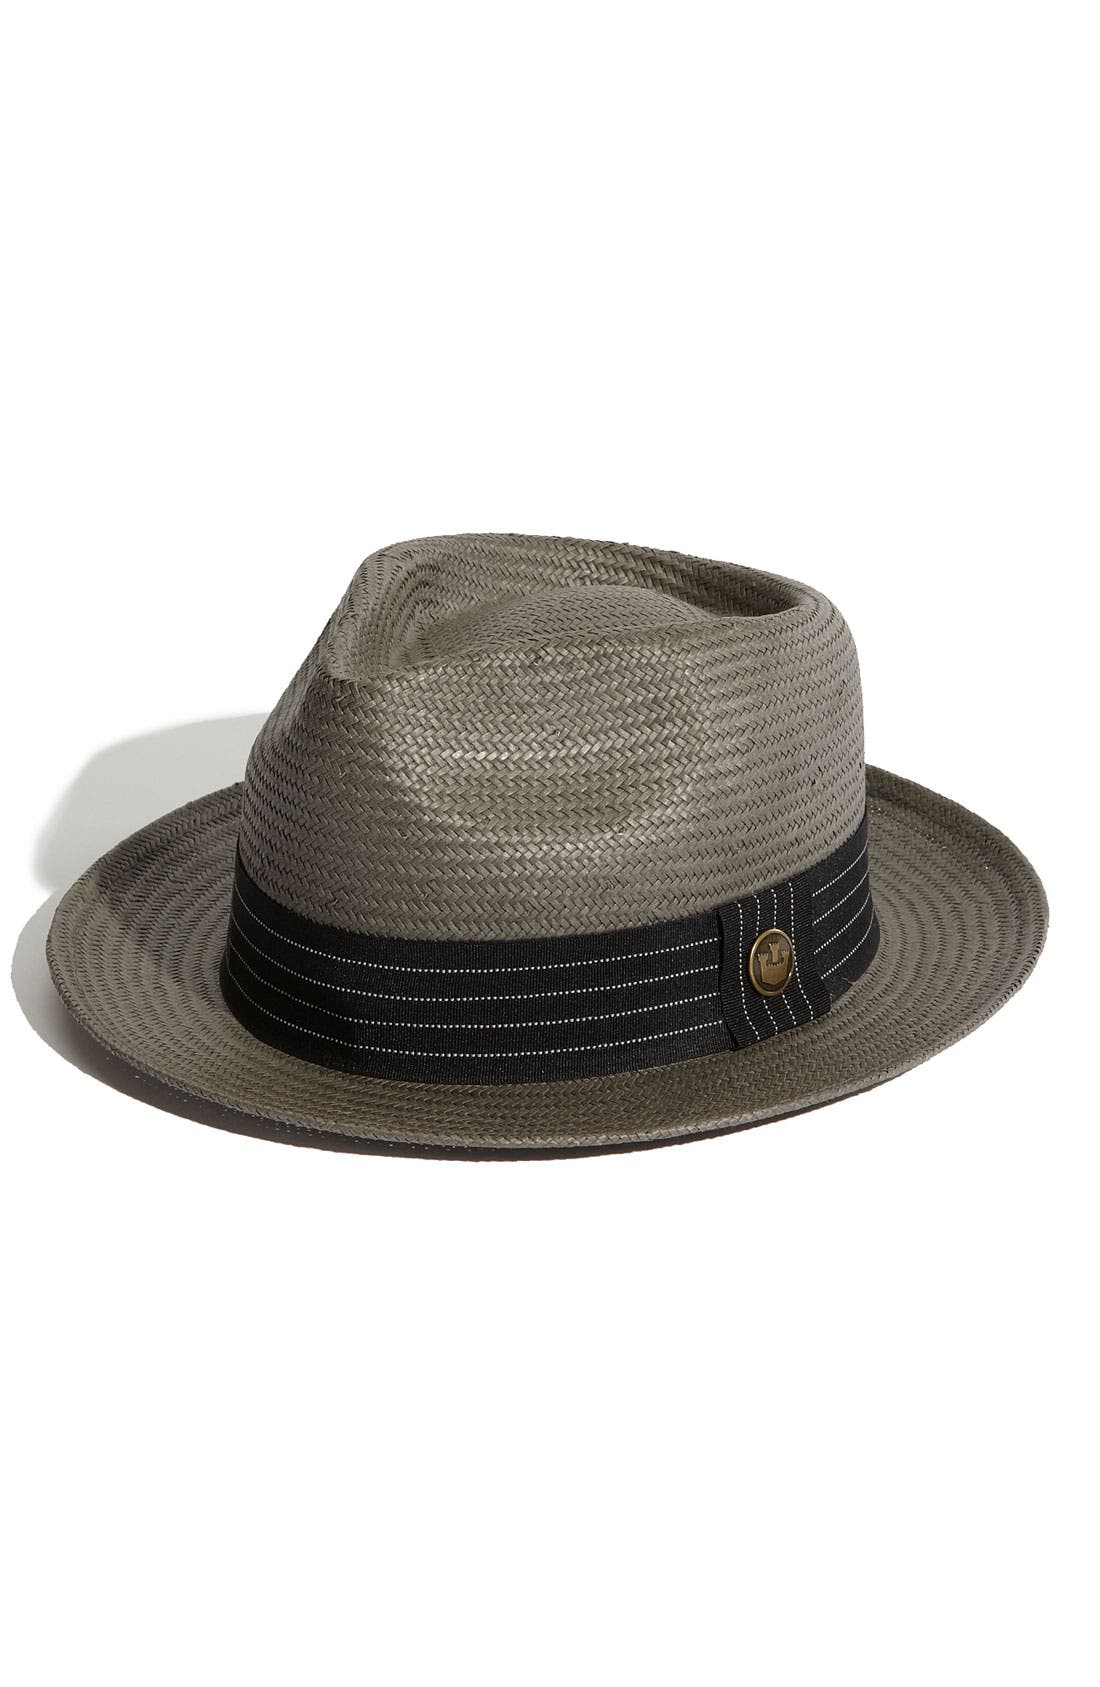 Main Image - Goorin Brothers 'Snare' Straw Fedora